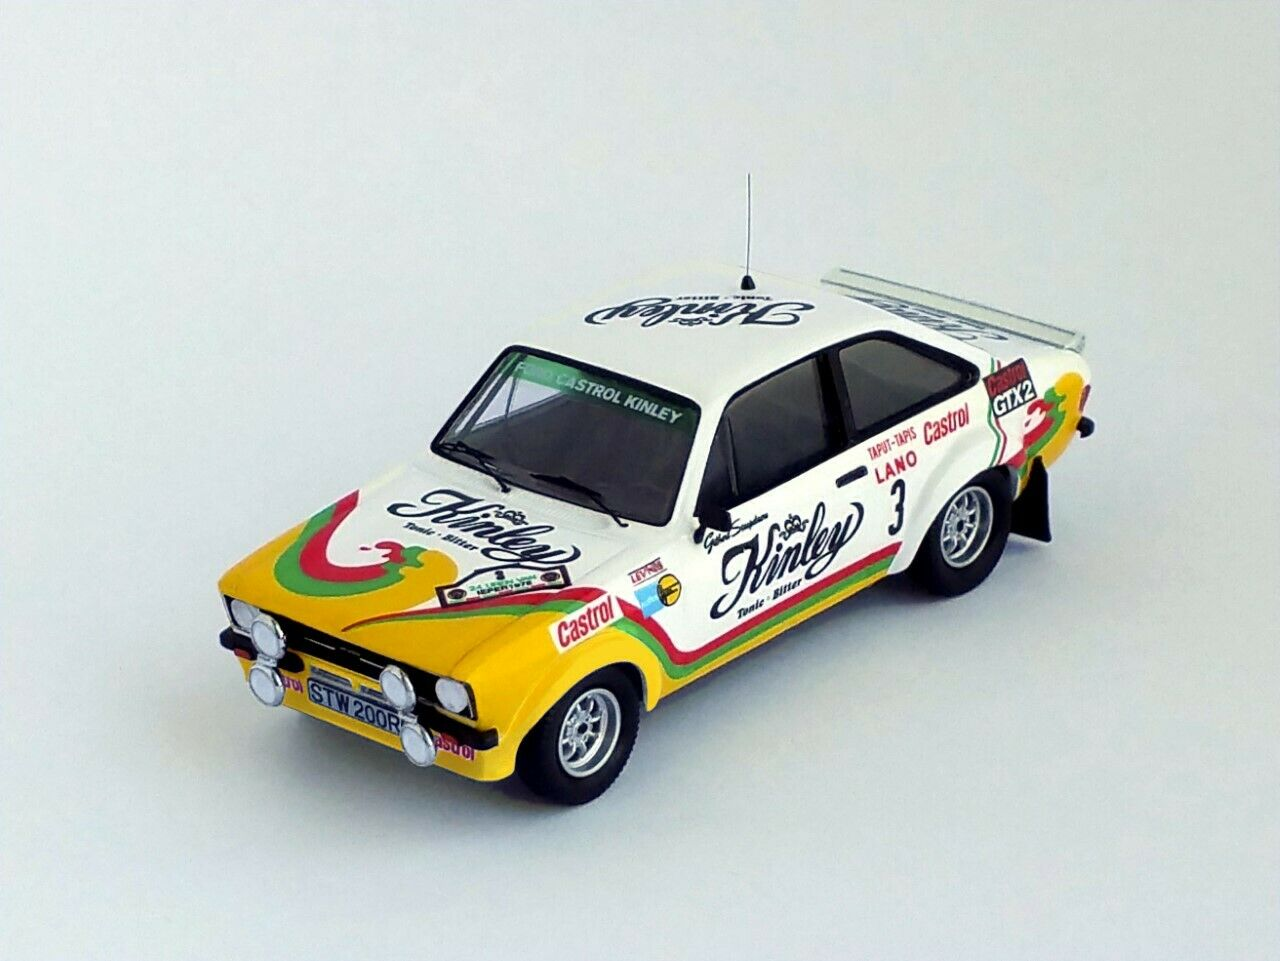 Ford escort mkii 2nd ypres rally 1978 G. staepelaere F. FRANSSEN-troféu rr.be05